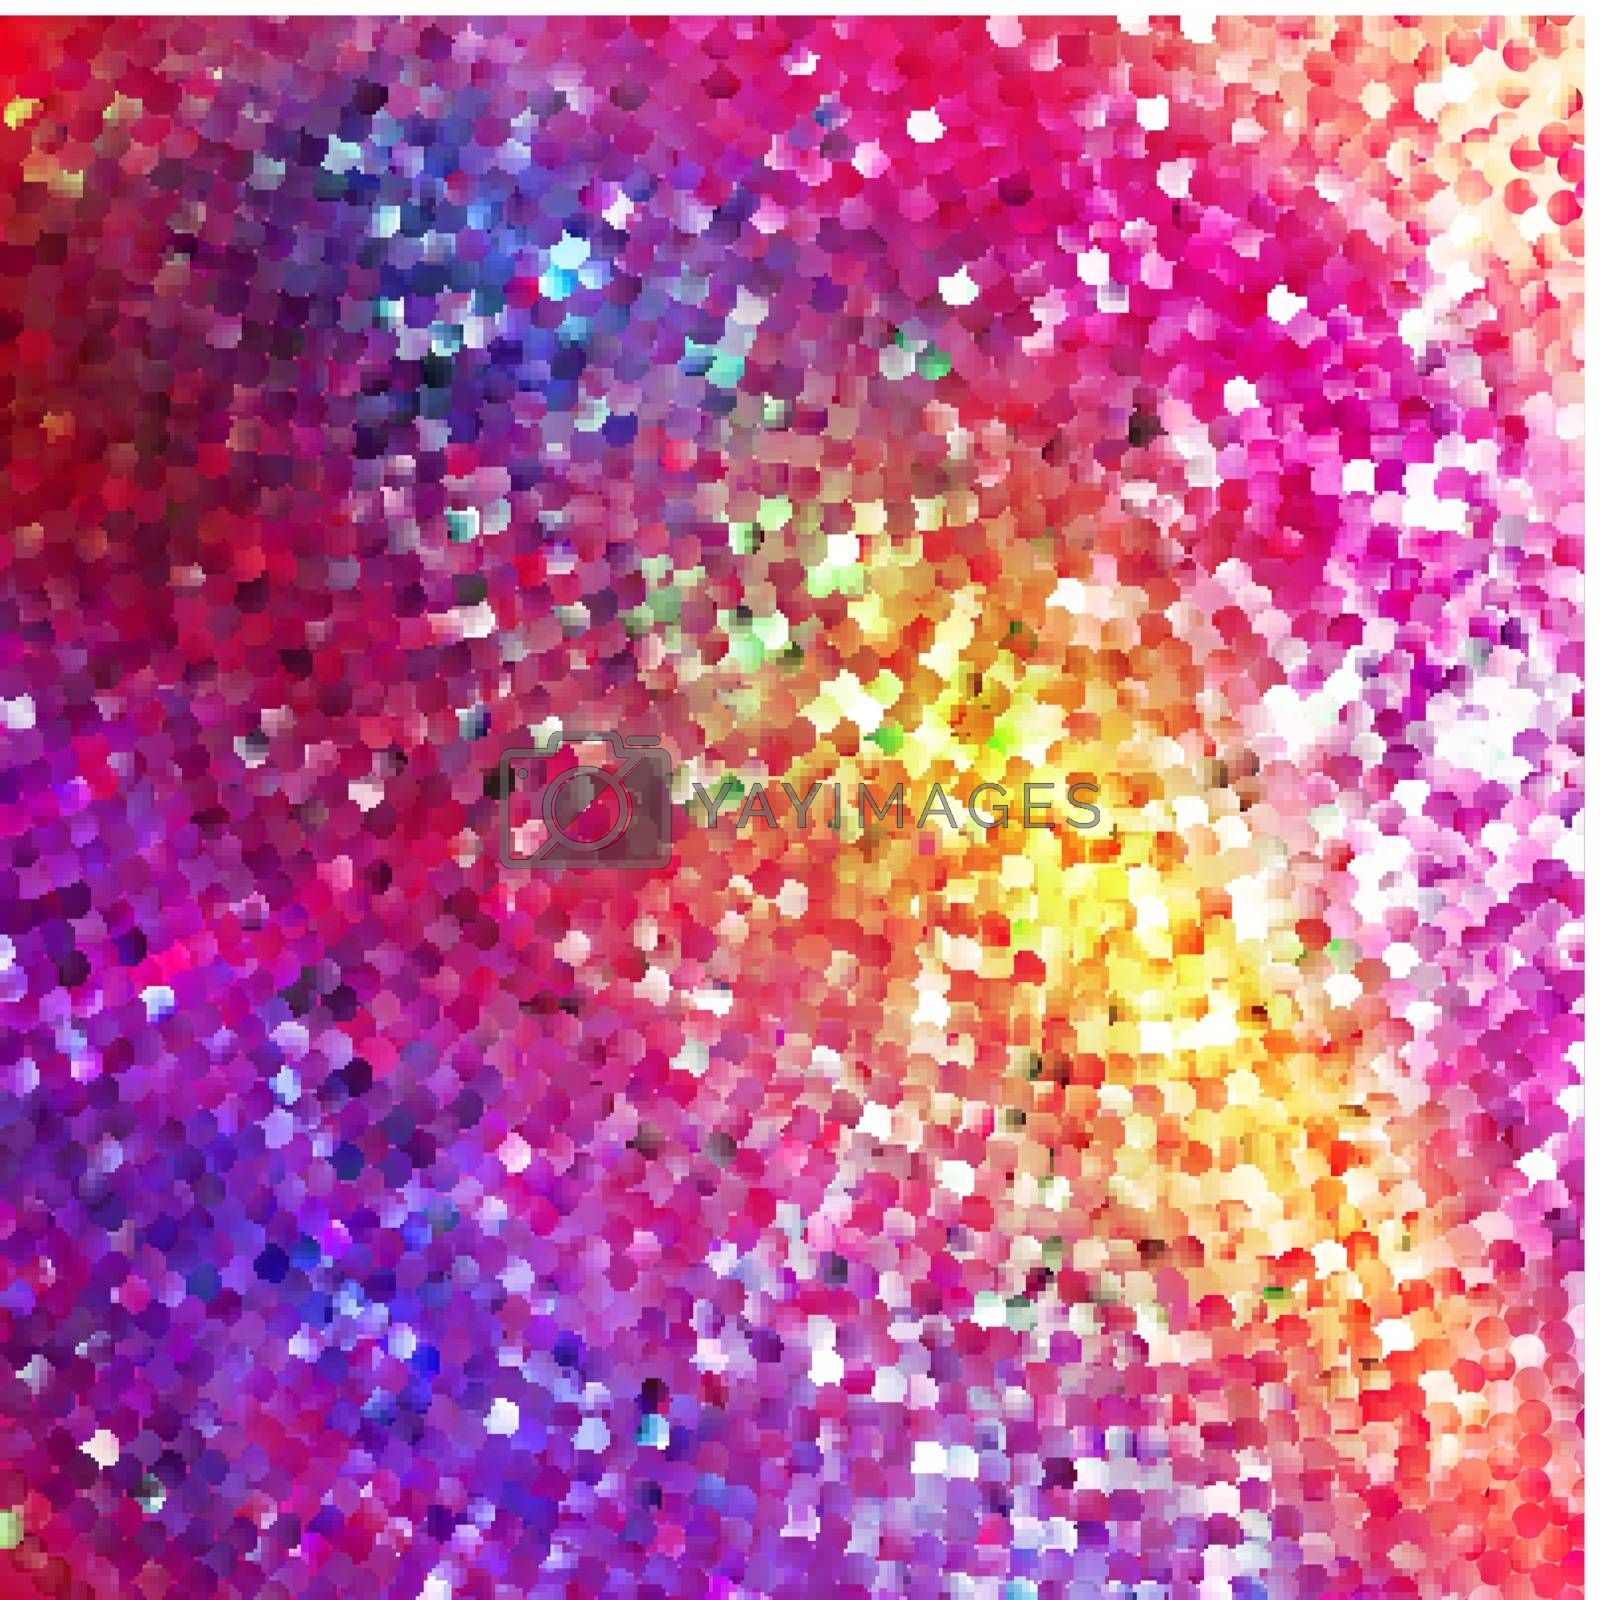 Amazing template design on red glittering background. EPS 10 vector file included